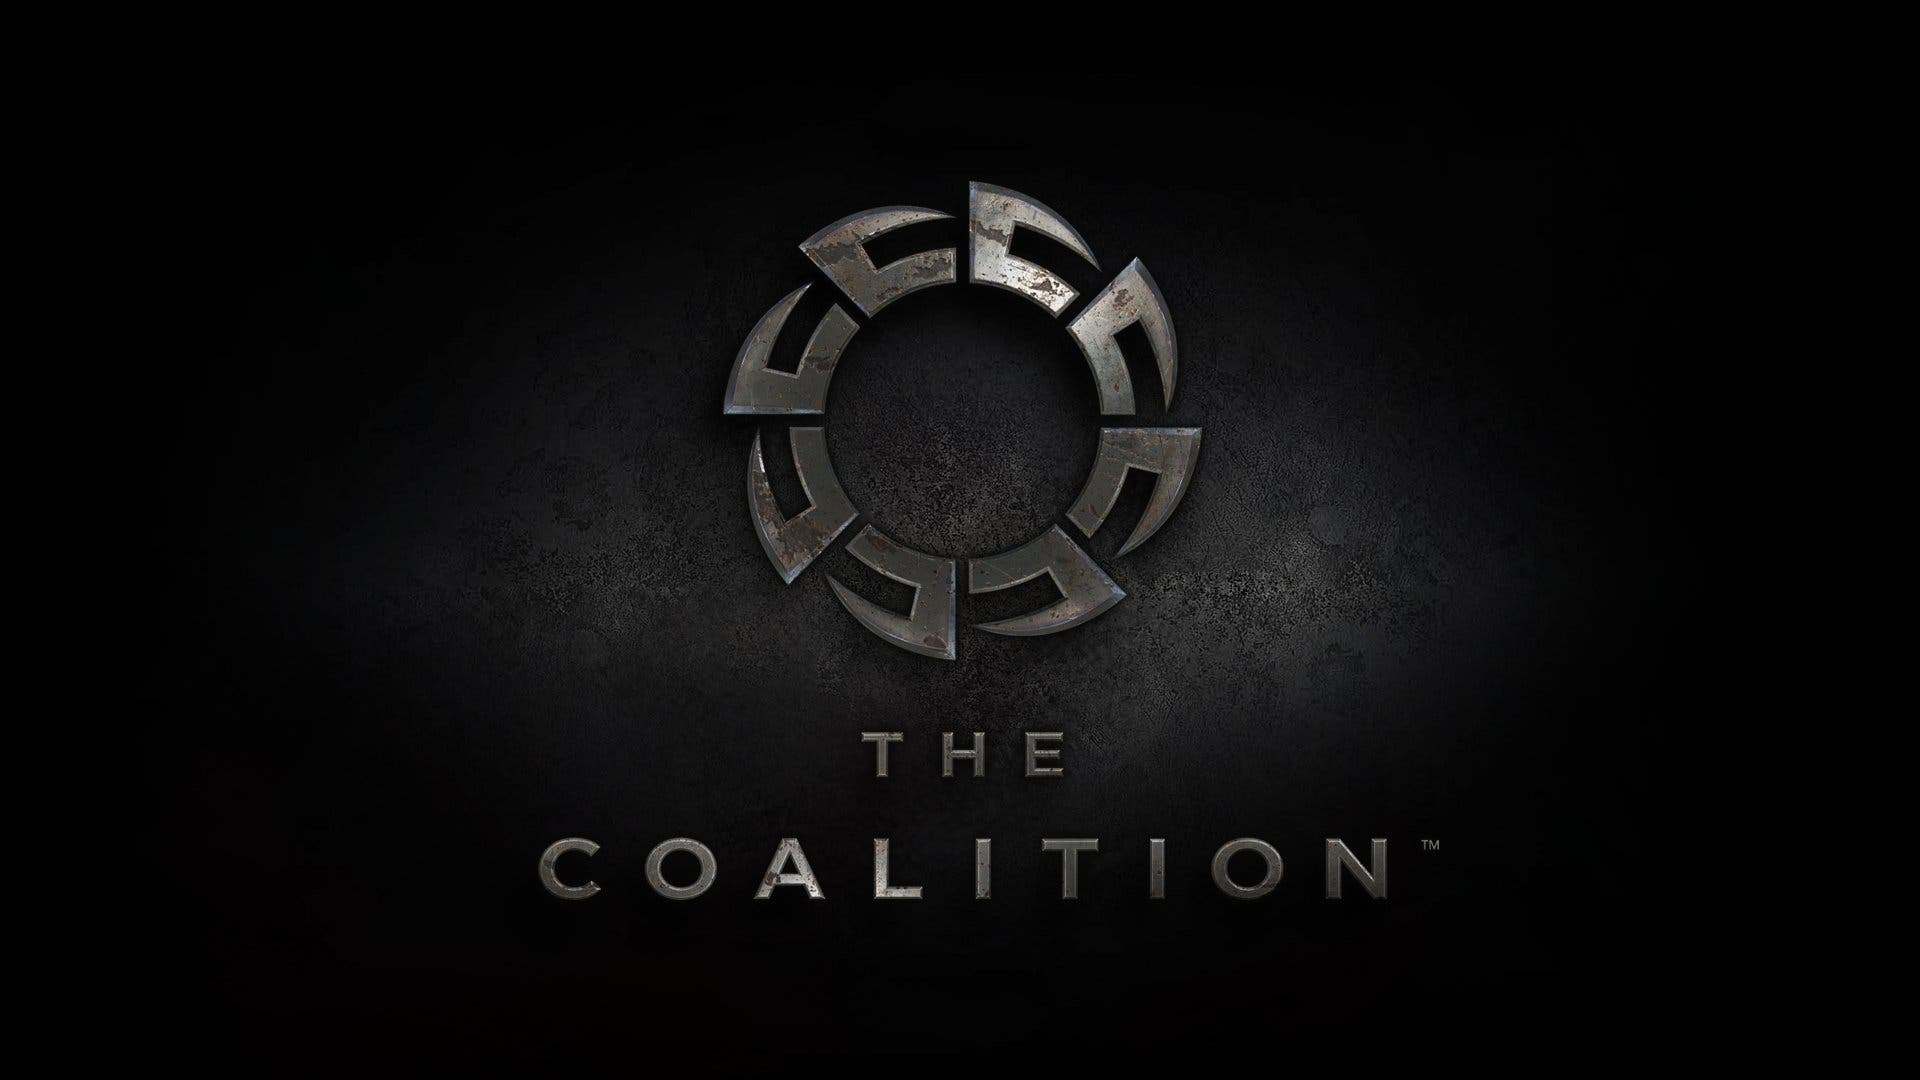 The Coalition will use Unreal Engine 5